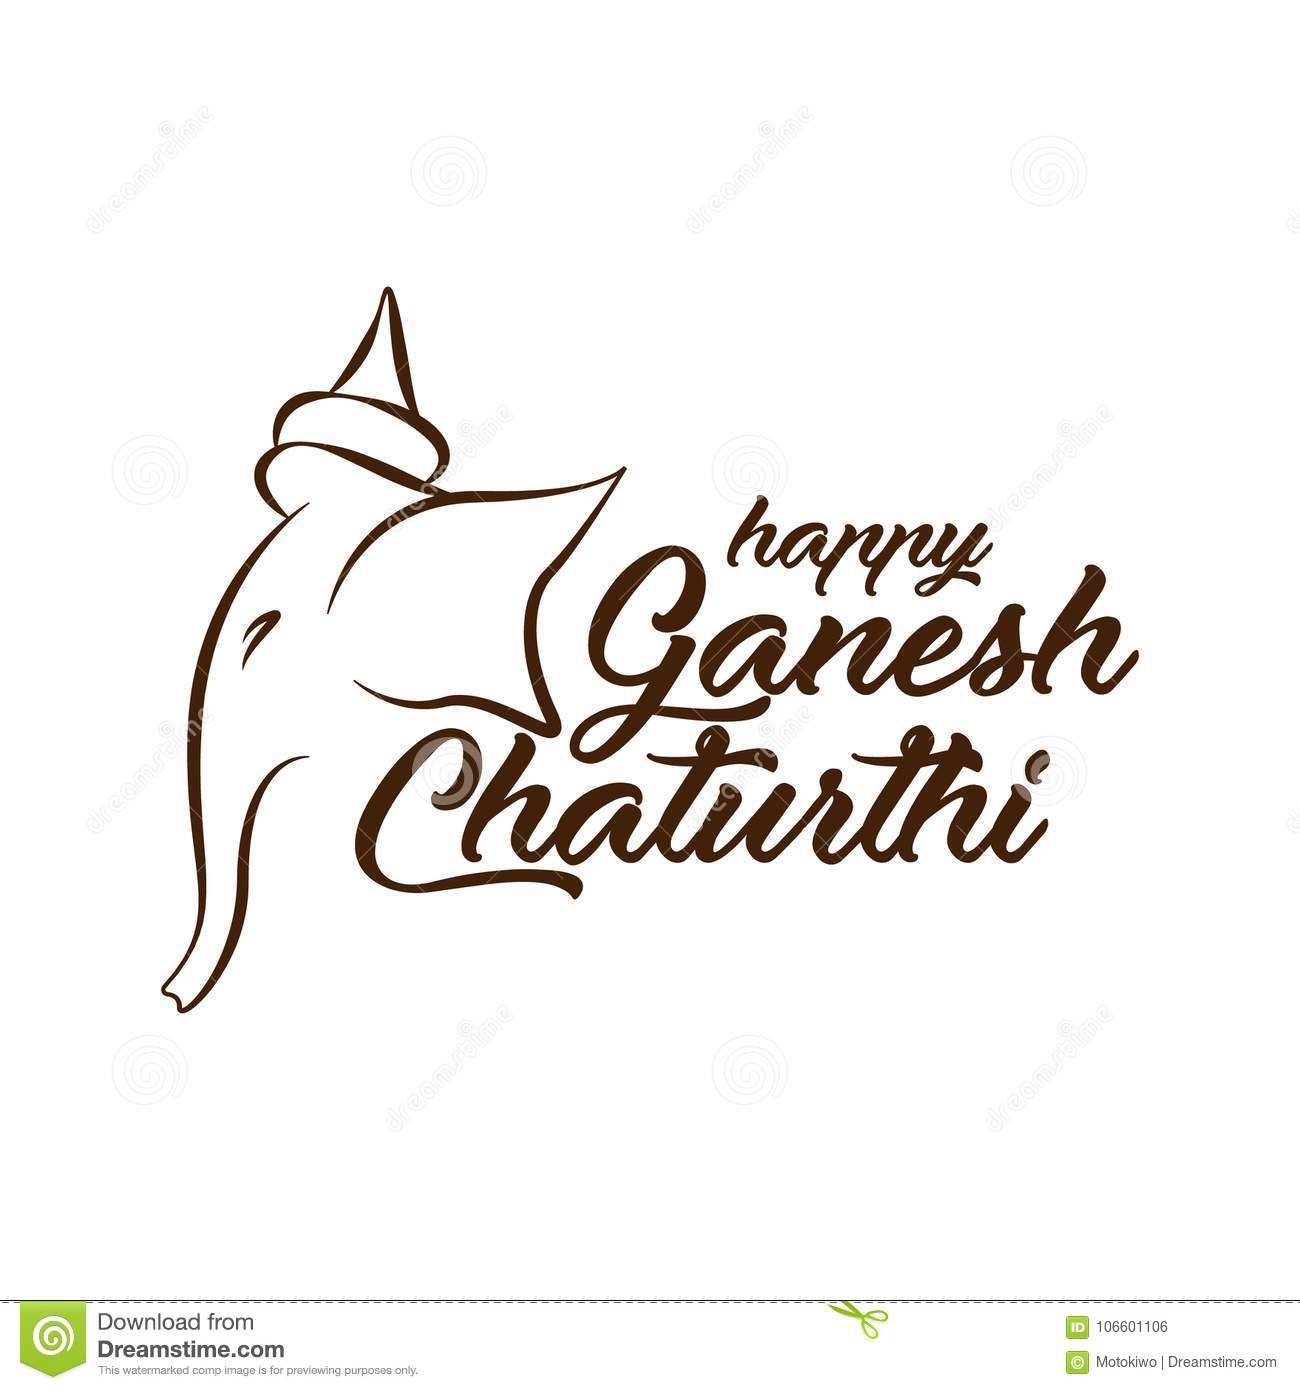 Happy ganesh chaturthi greeting card design stock illustration download happy ganesh chaturthi greeting card design stock illustration illustration of illustration morya m4hsunfo